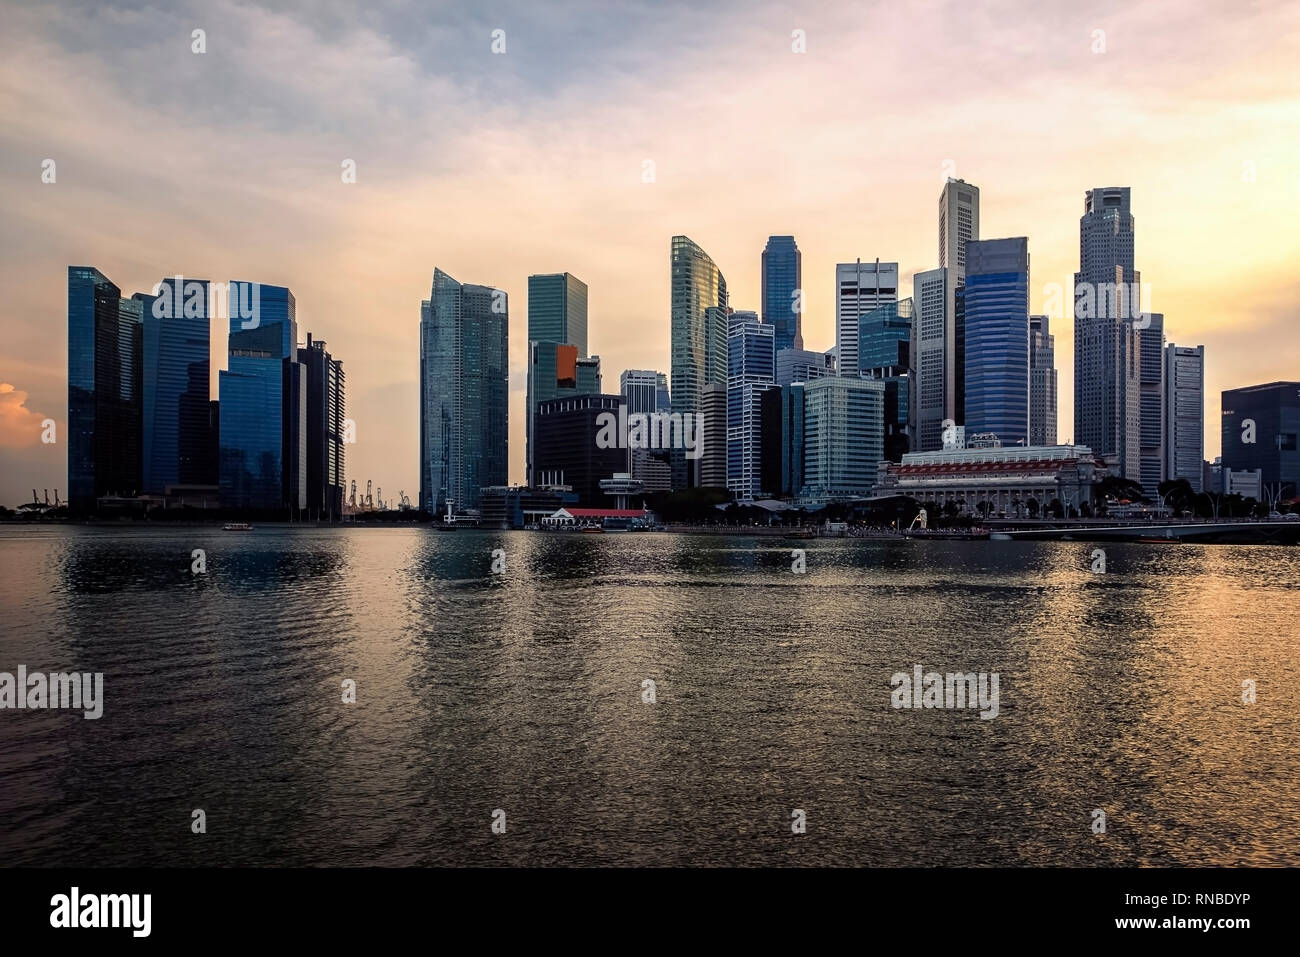 View of Marina Bay at sunset in Singapore City - Stock Image